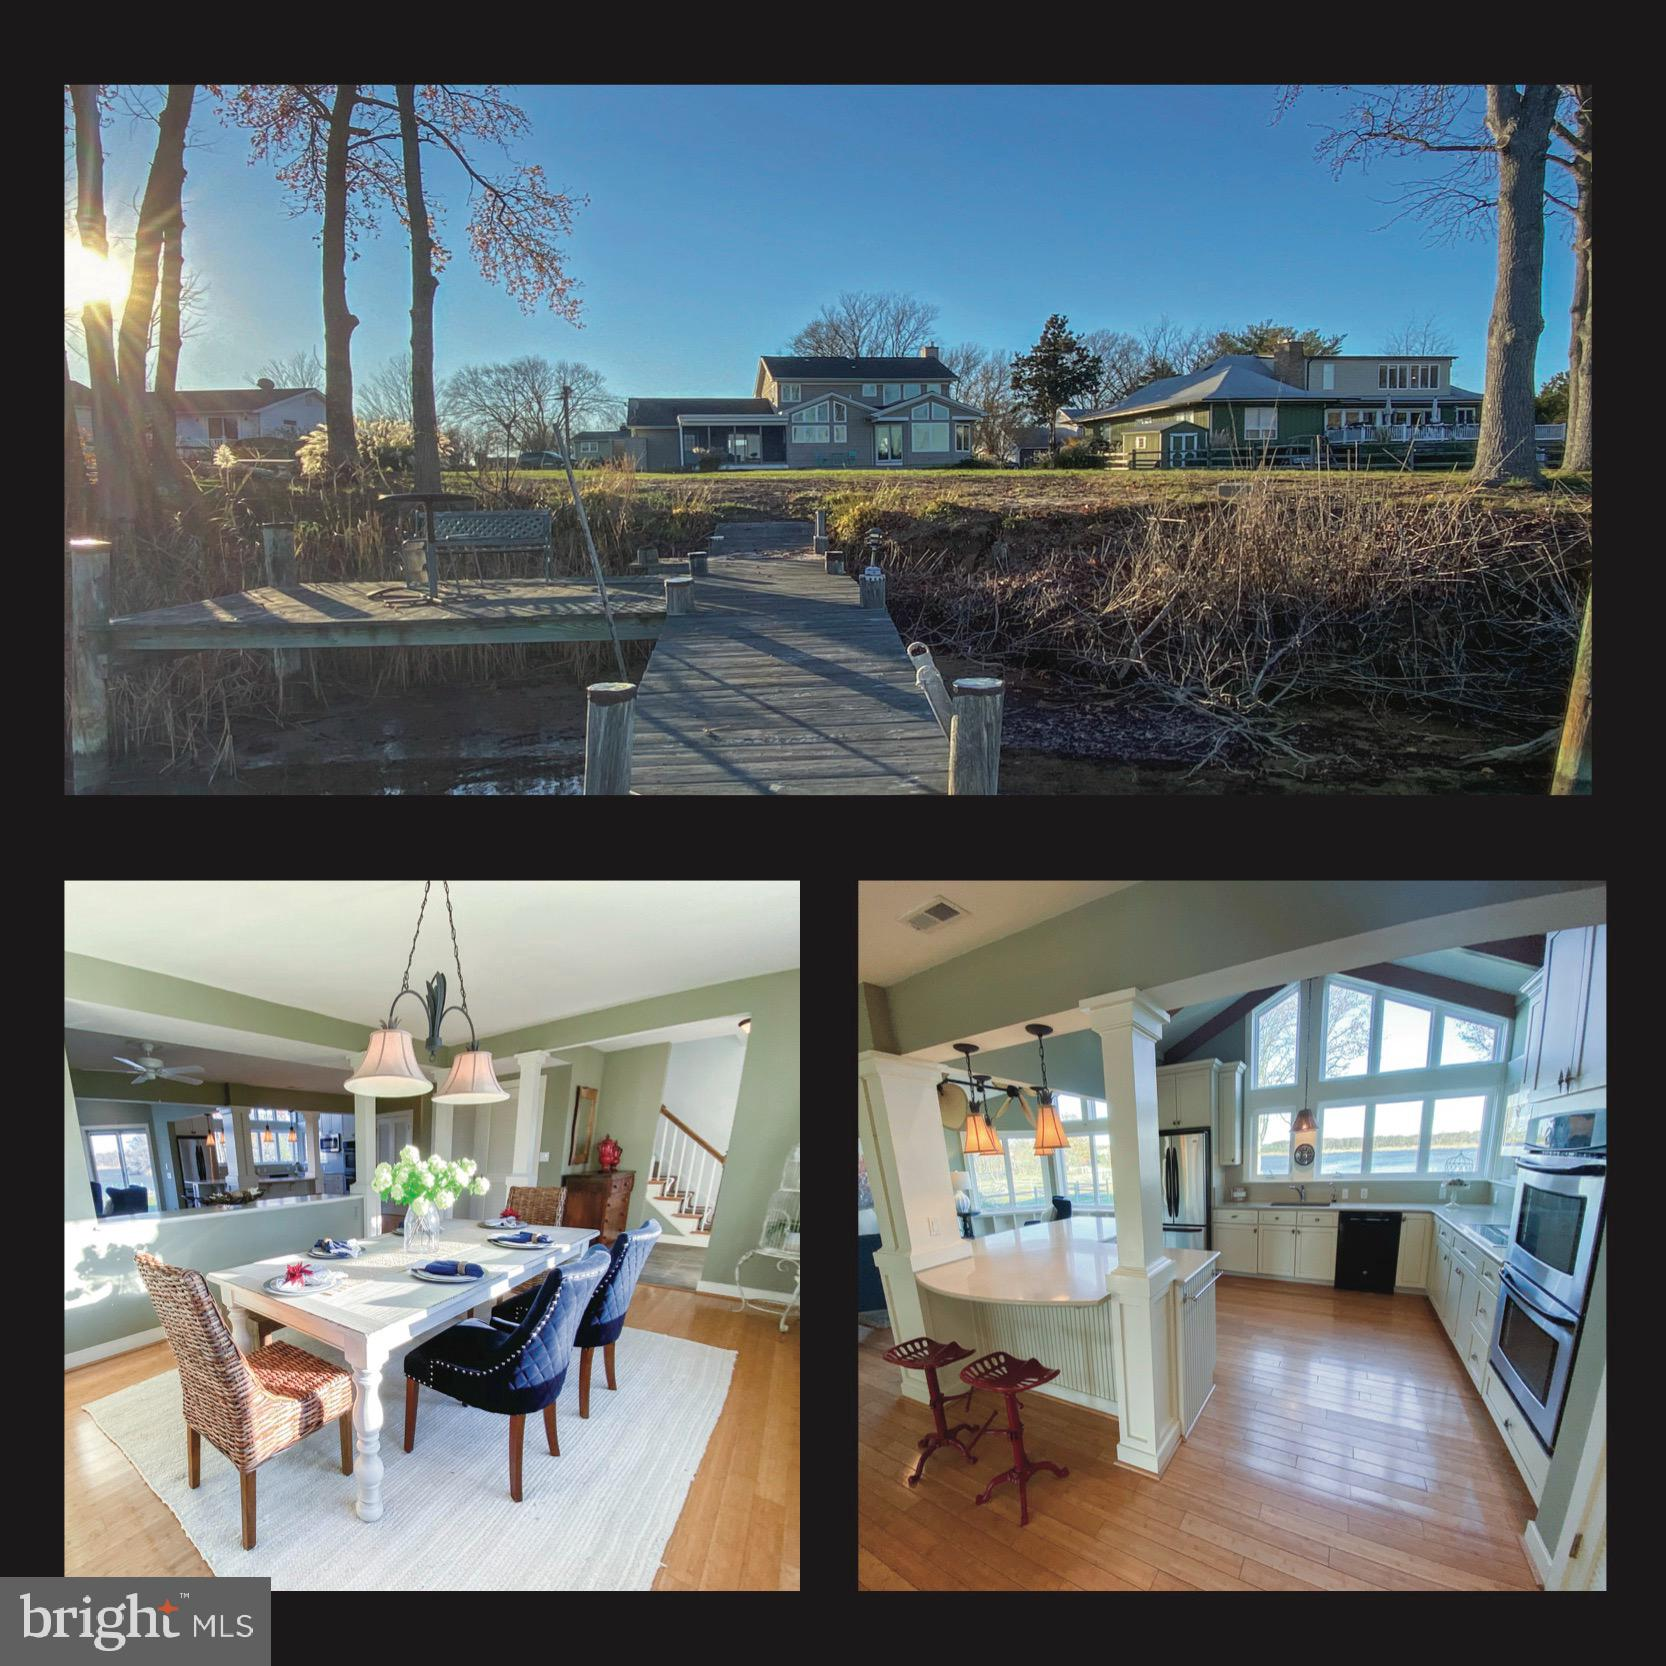 Looking for a waterfront home with deep water? How does 6ft MLW sound? Add spectacular views of Pric